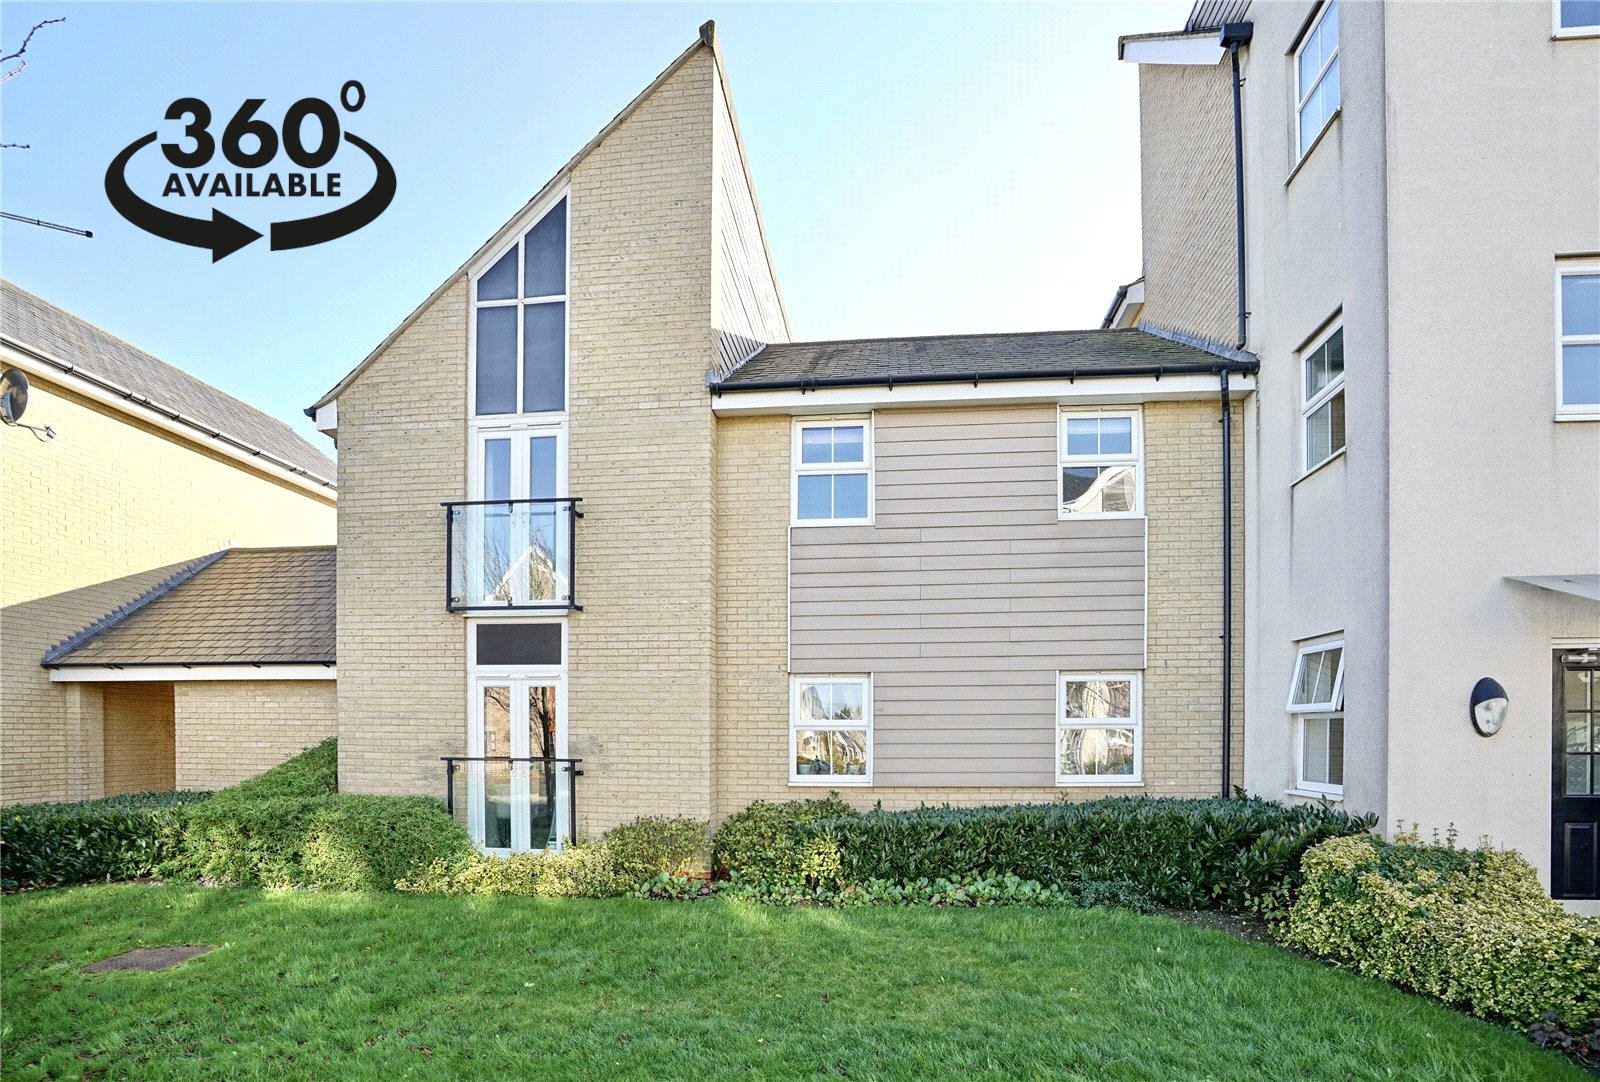 2 bed apartment for sale in St Neots, Stone Hill, PE19 6AA, PE19